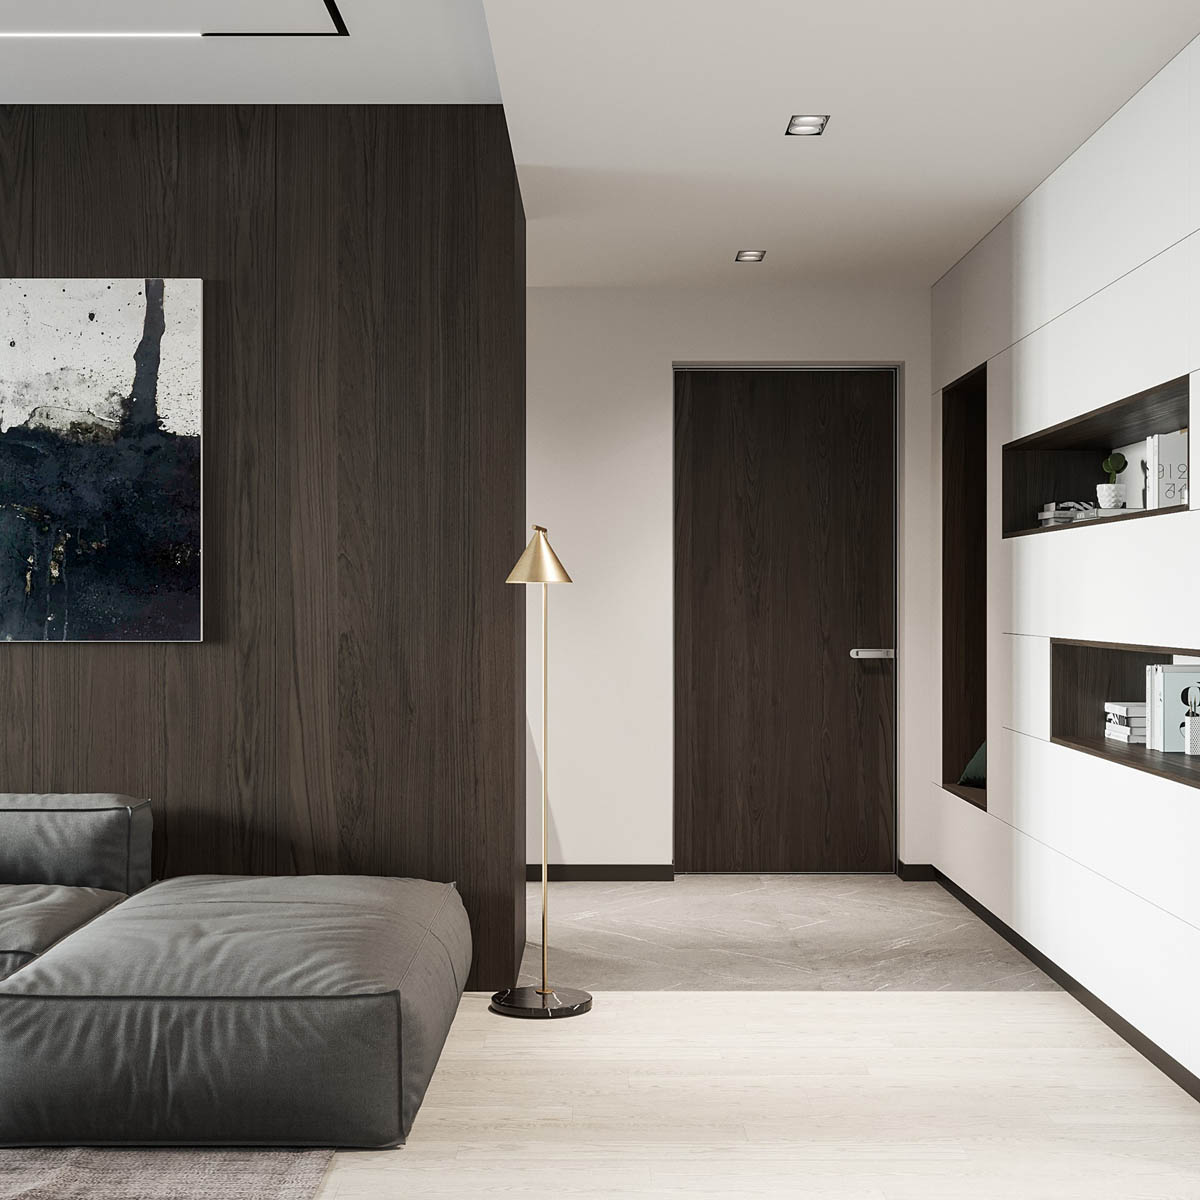 Interior Design Around Walnut Wood Finishes: 3 Great Examples images 1